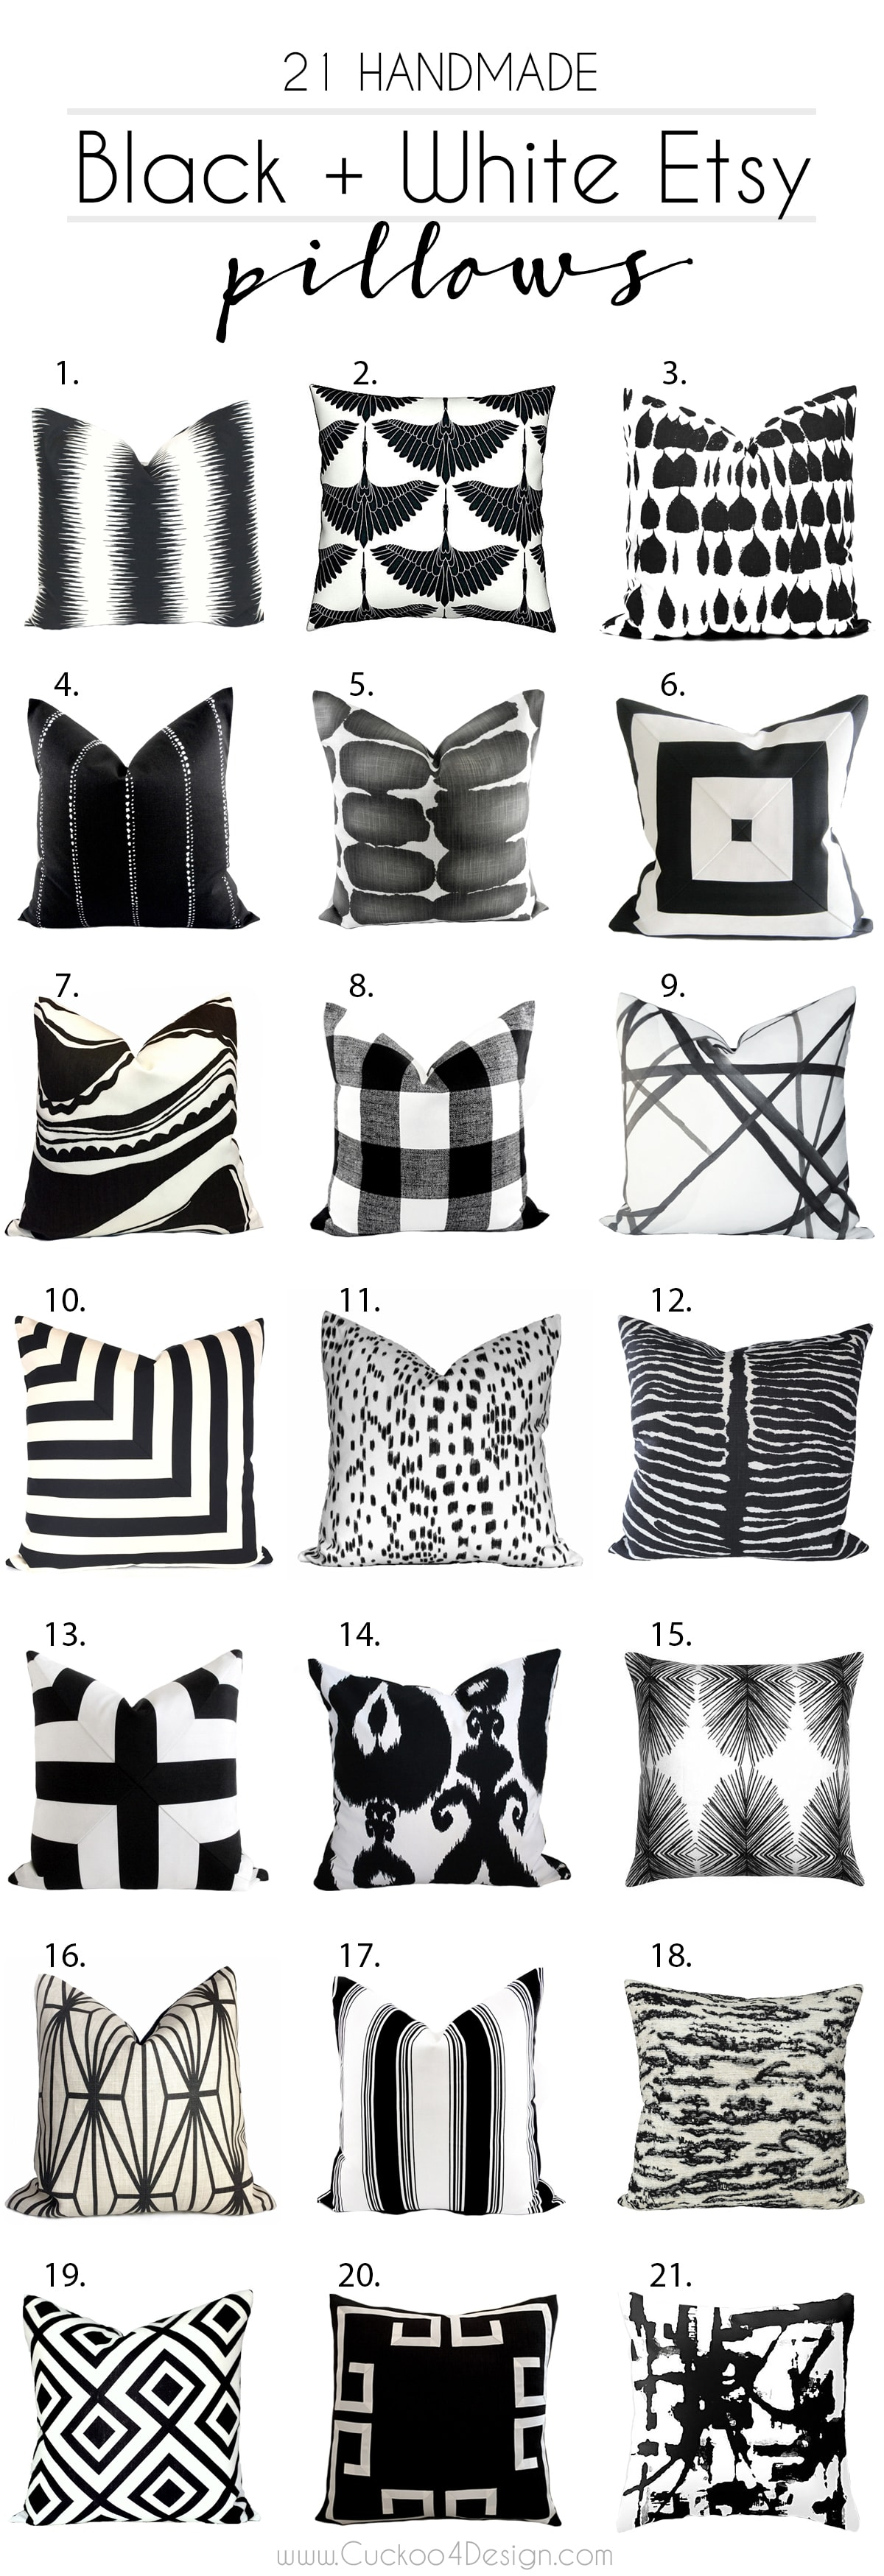 Friday Favorites 21 Handmade Black And White Etsy Pillows